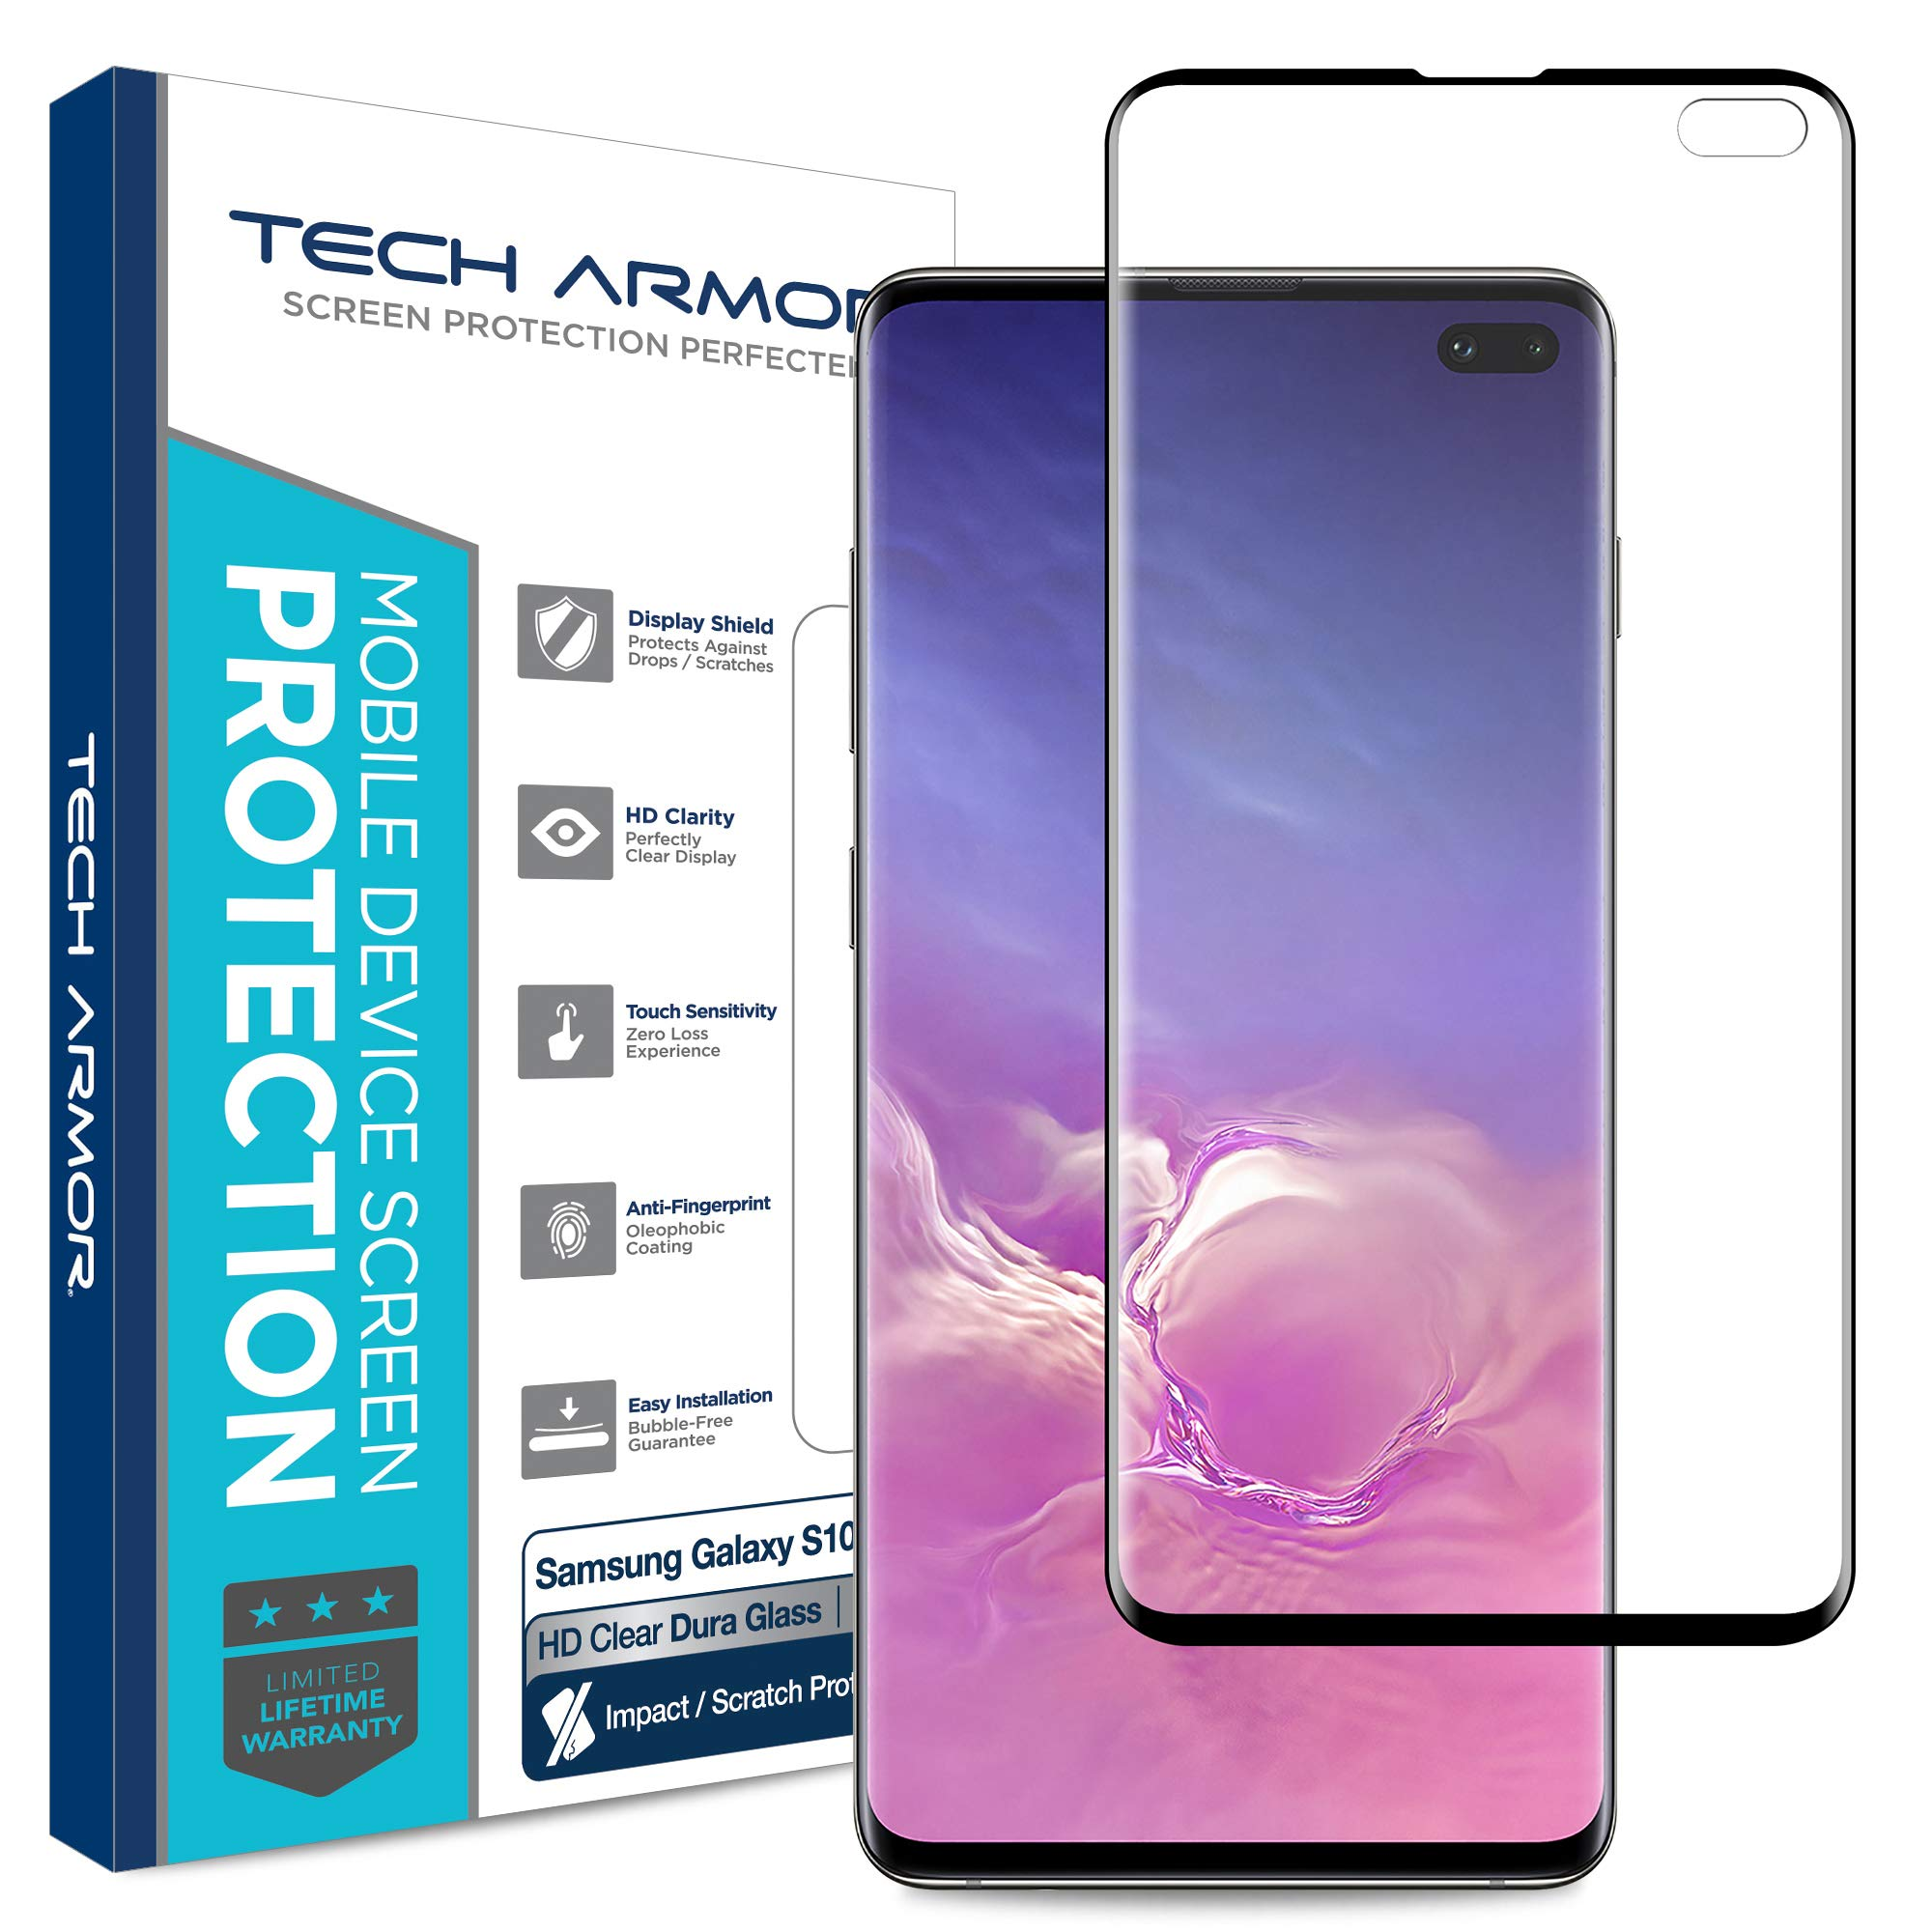 Tech Armor Dura Glass Screen Protector Designed for Samsung Galaxy S10 Plus - Case-Friendly, Hybrid Glass, Ultra-Thin, Scratch and Impact Protection with Easy Installation Tool - [1-Pack] by Tech Armor